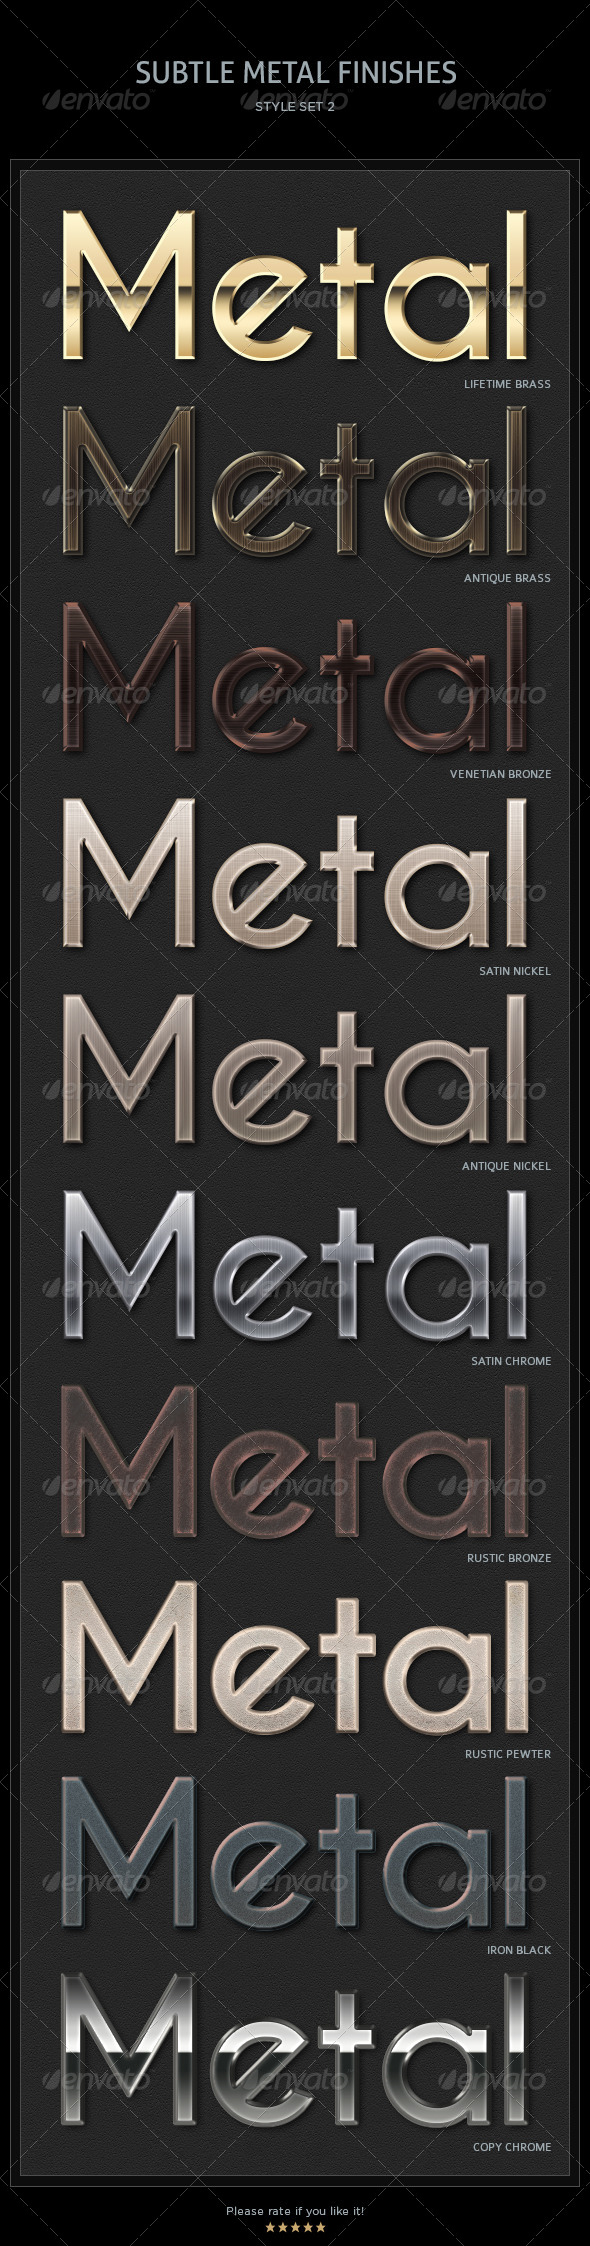 10 Subtle Metal Finishes Text Styles - Text Effects Actions